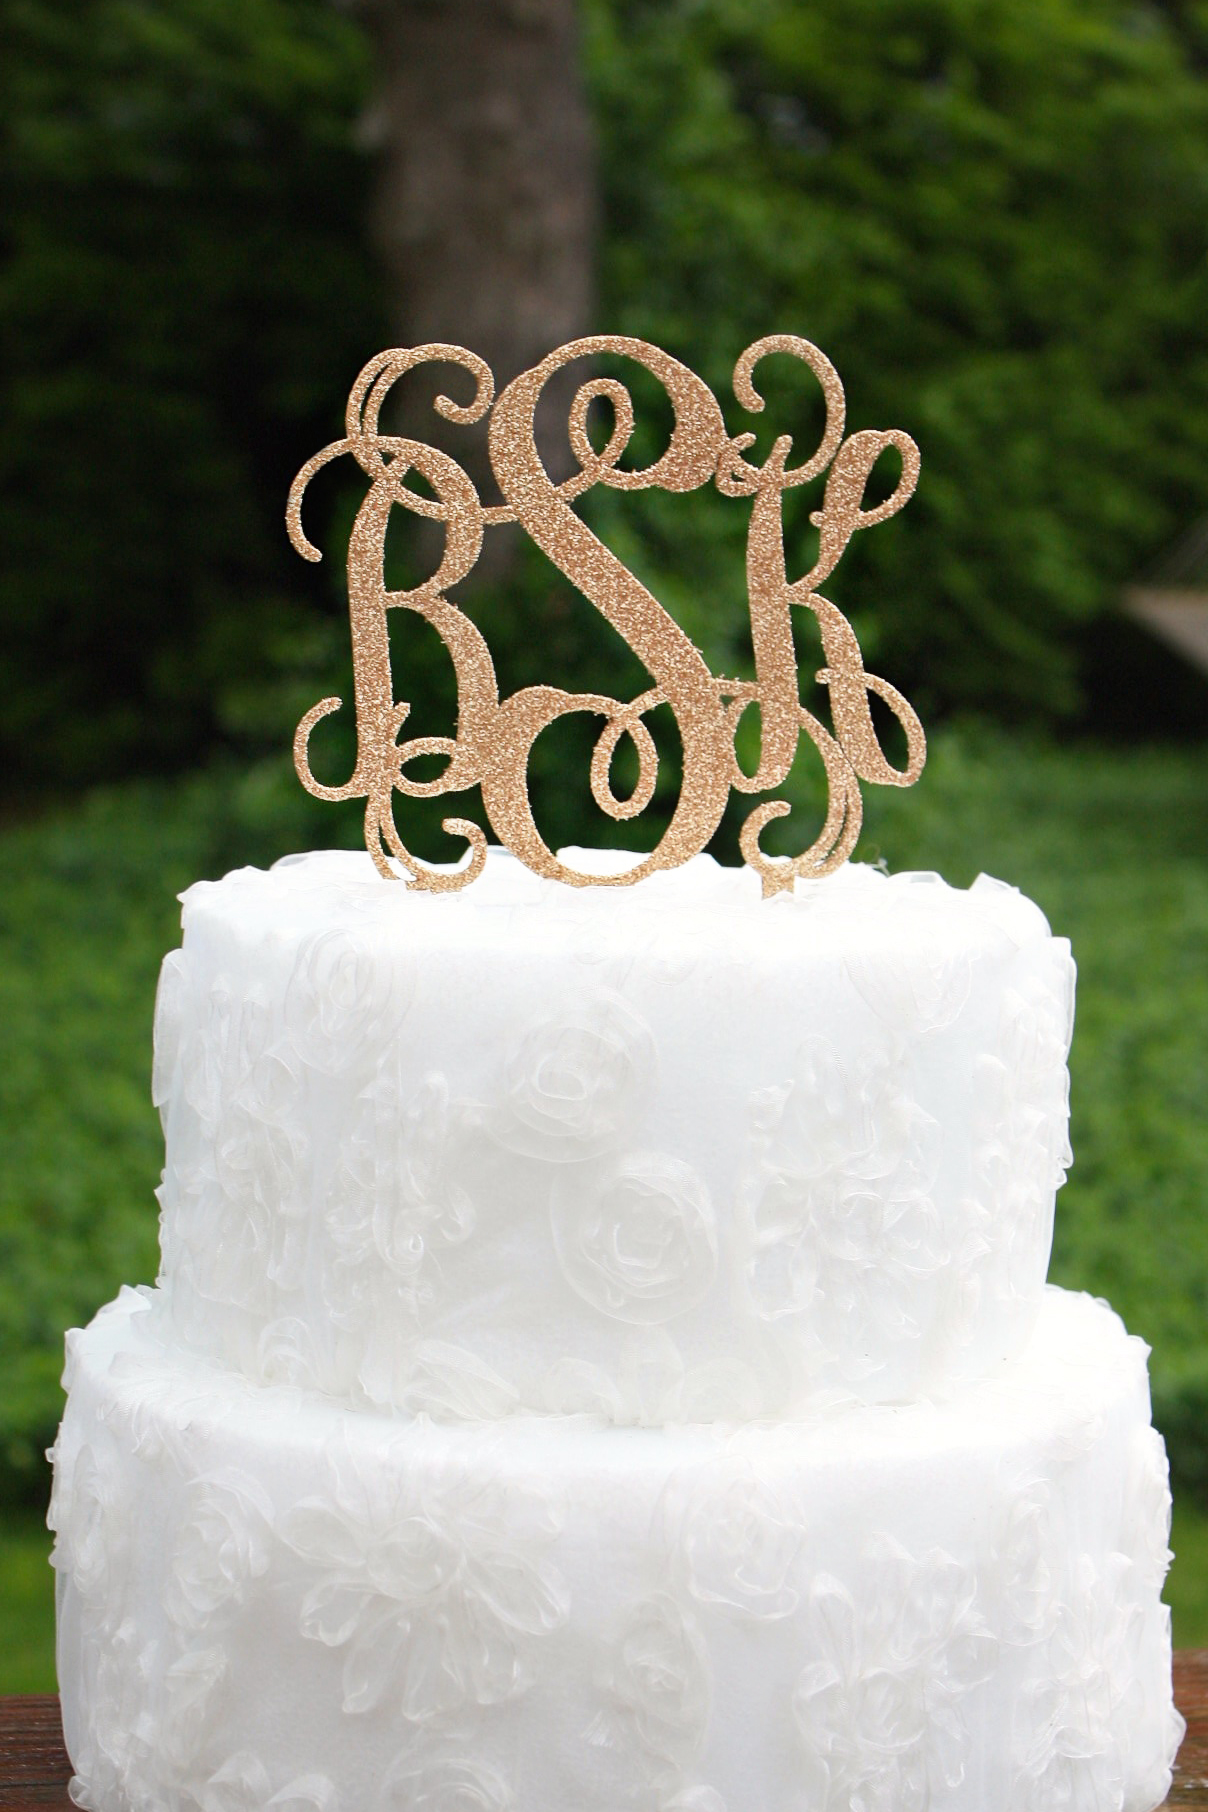 You could win a glitter monogram cake topper!